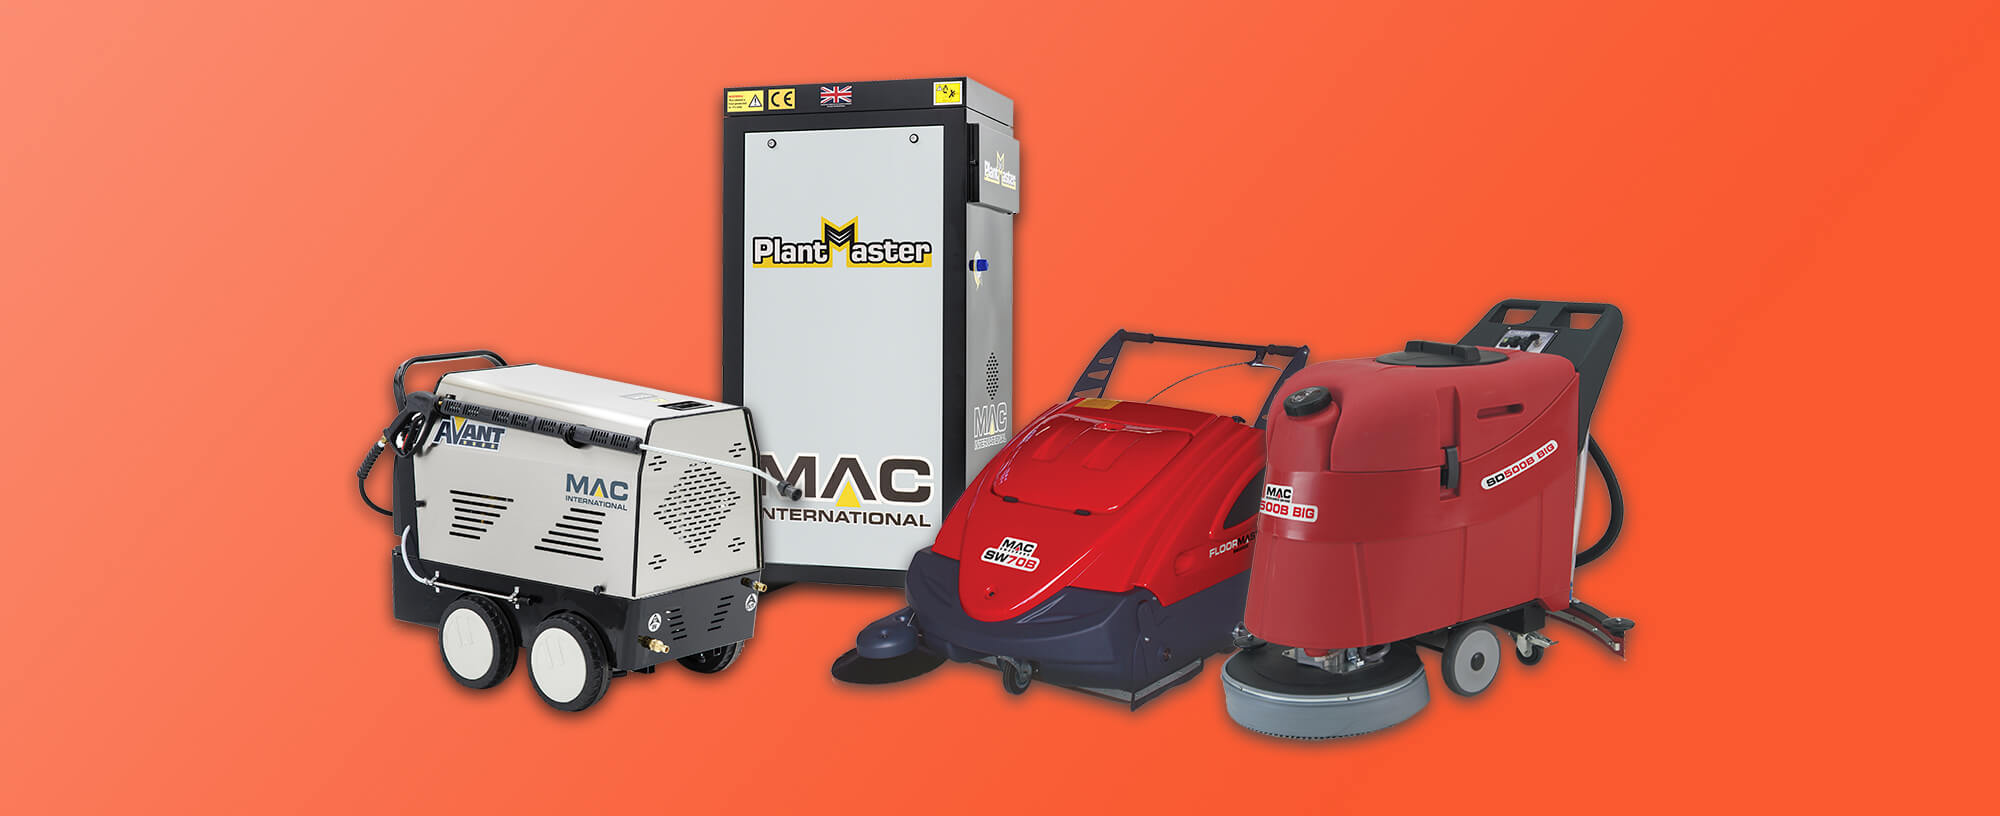 Ruck Engineering Cleaning Equipment Suppliers Darlington, Durham, Teesside